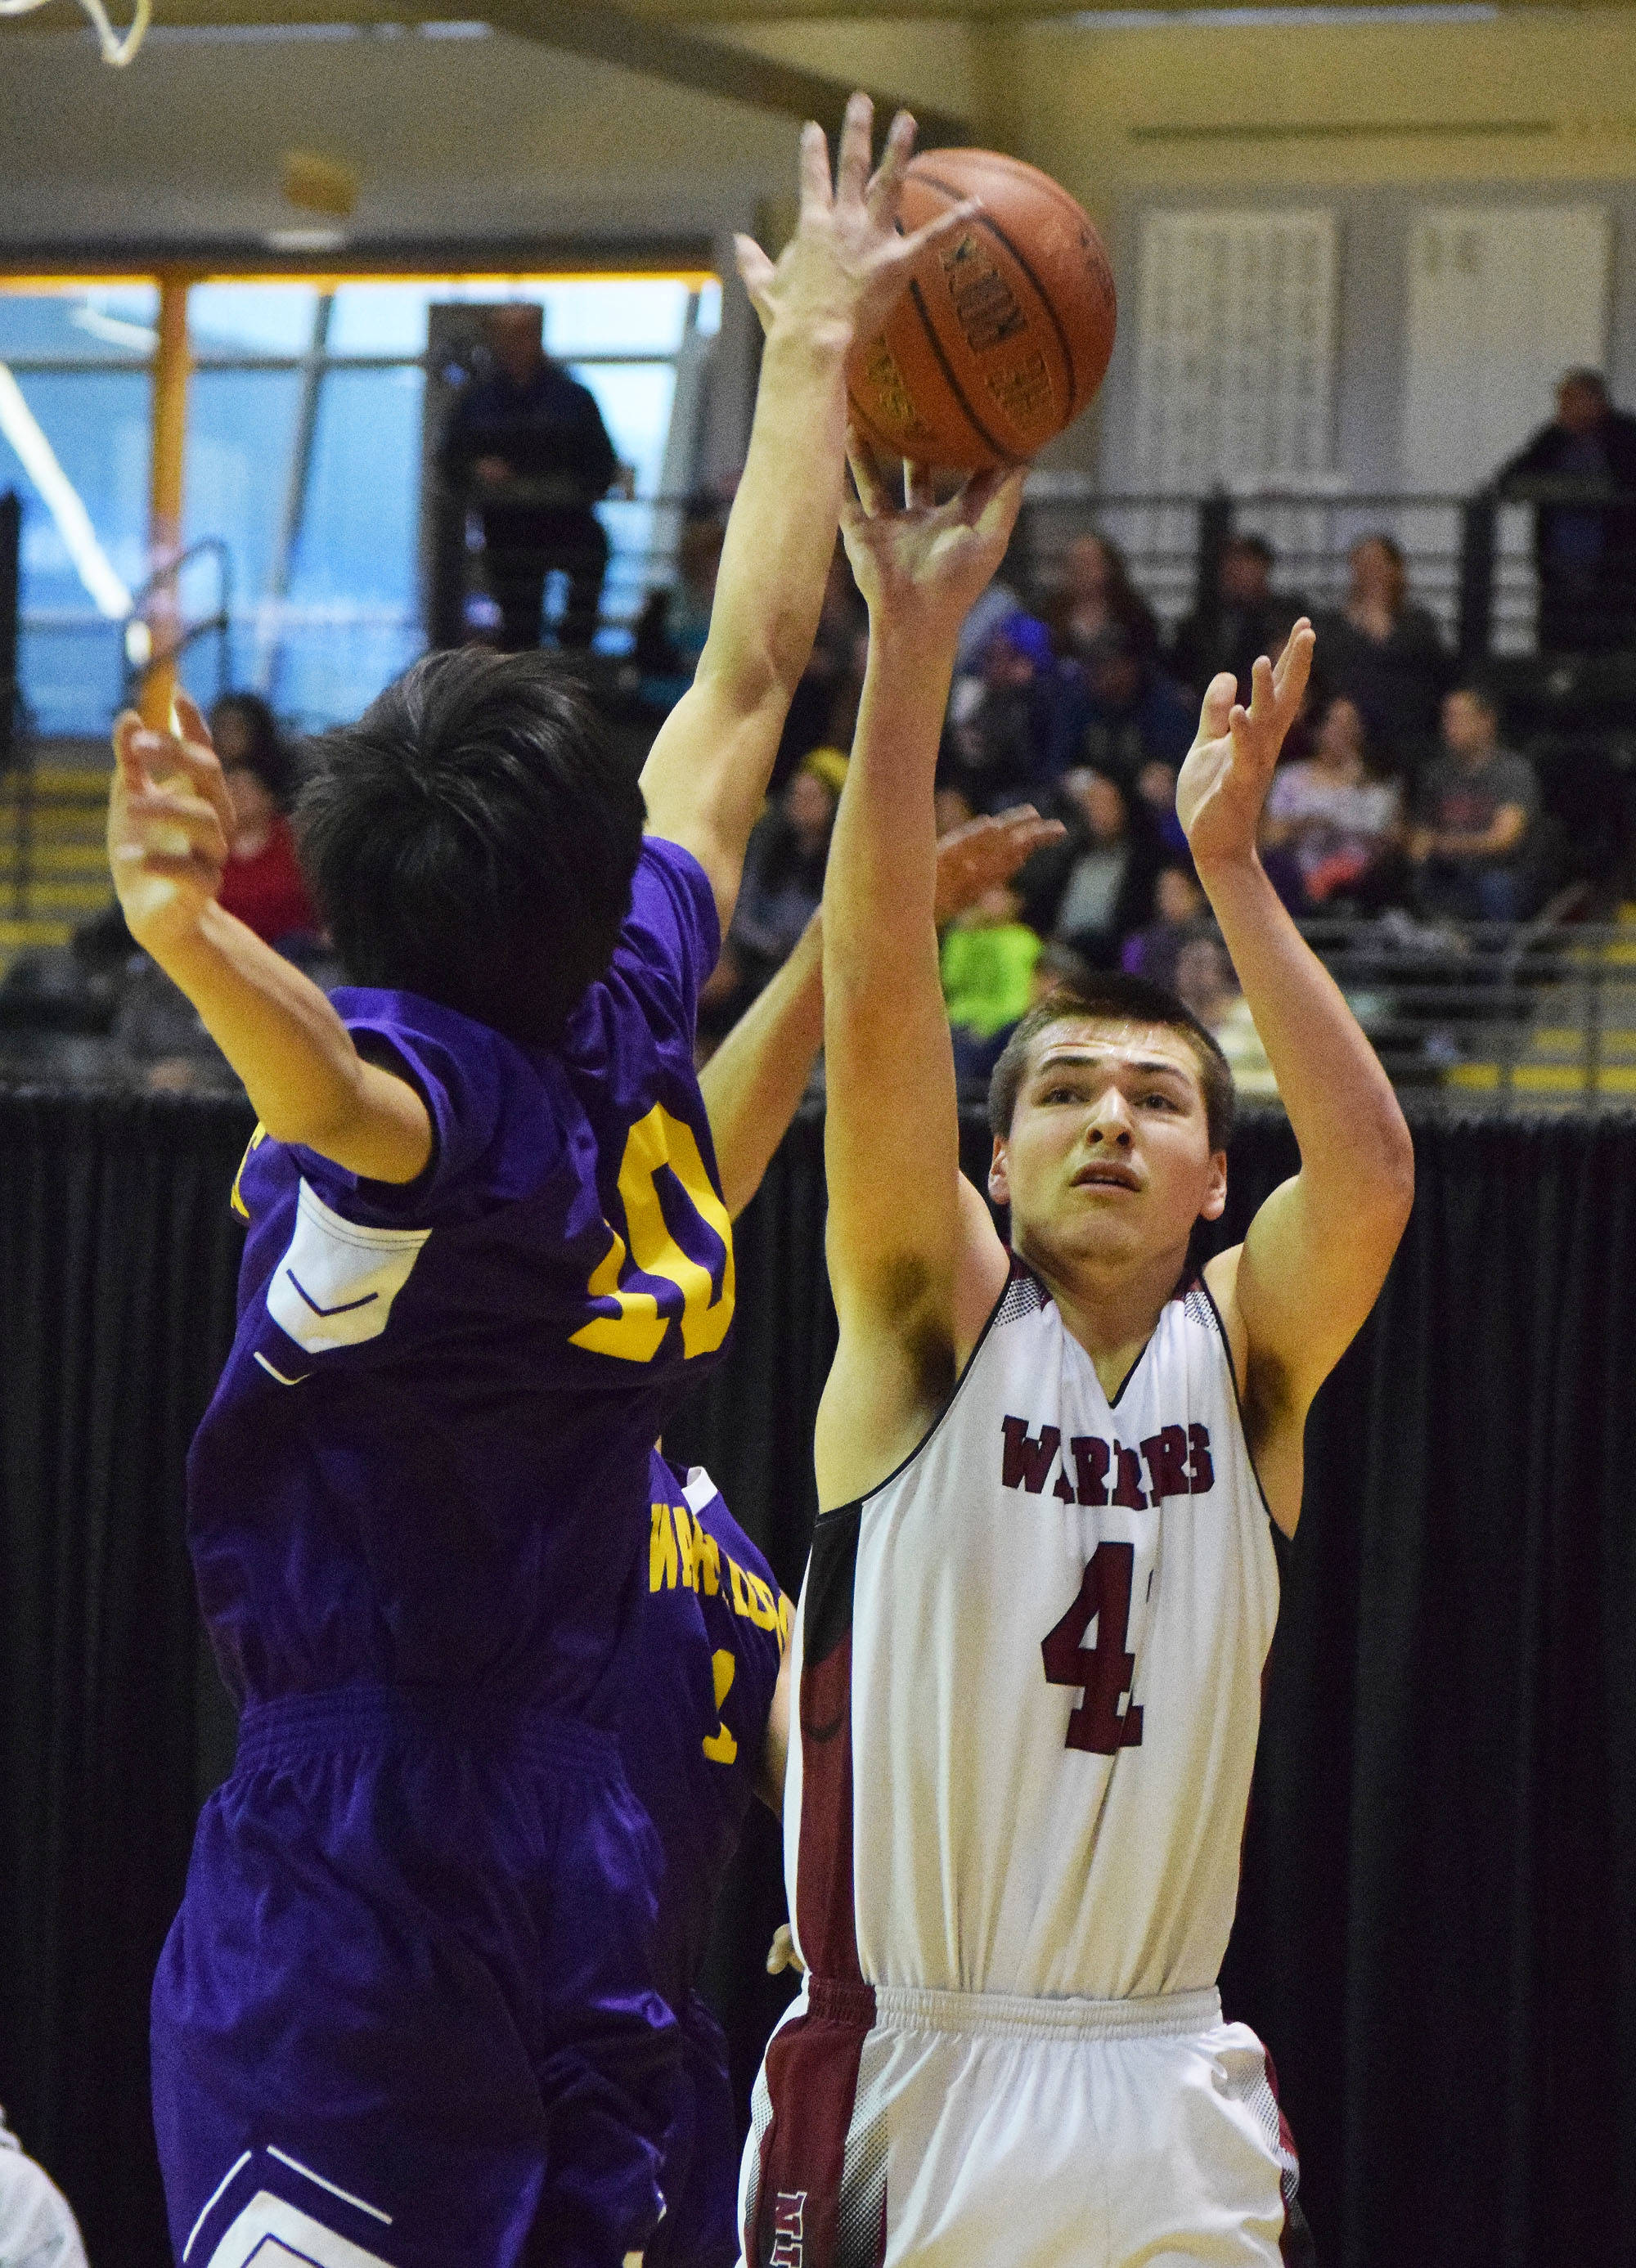 Nikolaevsk's Michael Trail shoots with Hydaburg defender Mike Eaglestaff blocking Friday, March 17, 2017, at the Class 1A state tournament held at the Alaska Airlines Center in Anchorage. (Photo by Joey Klecka/Peninsula Clarion)